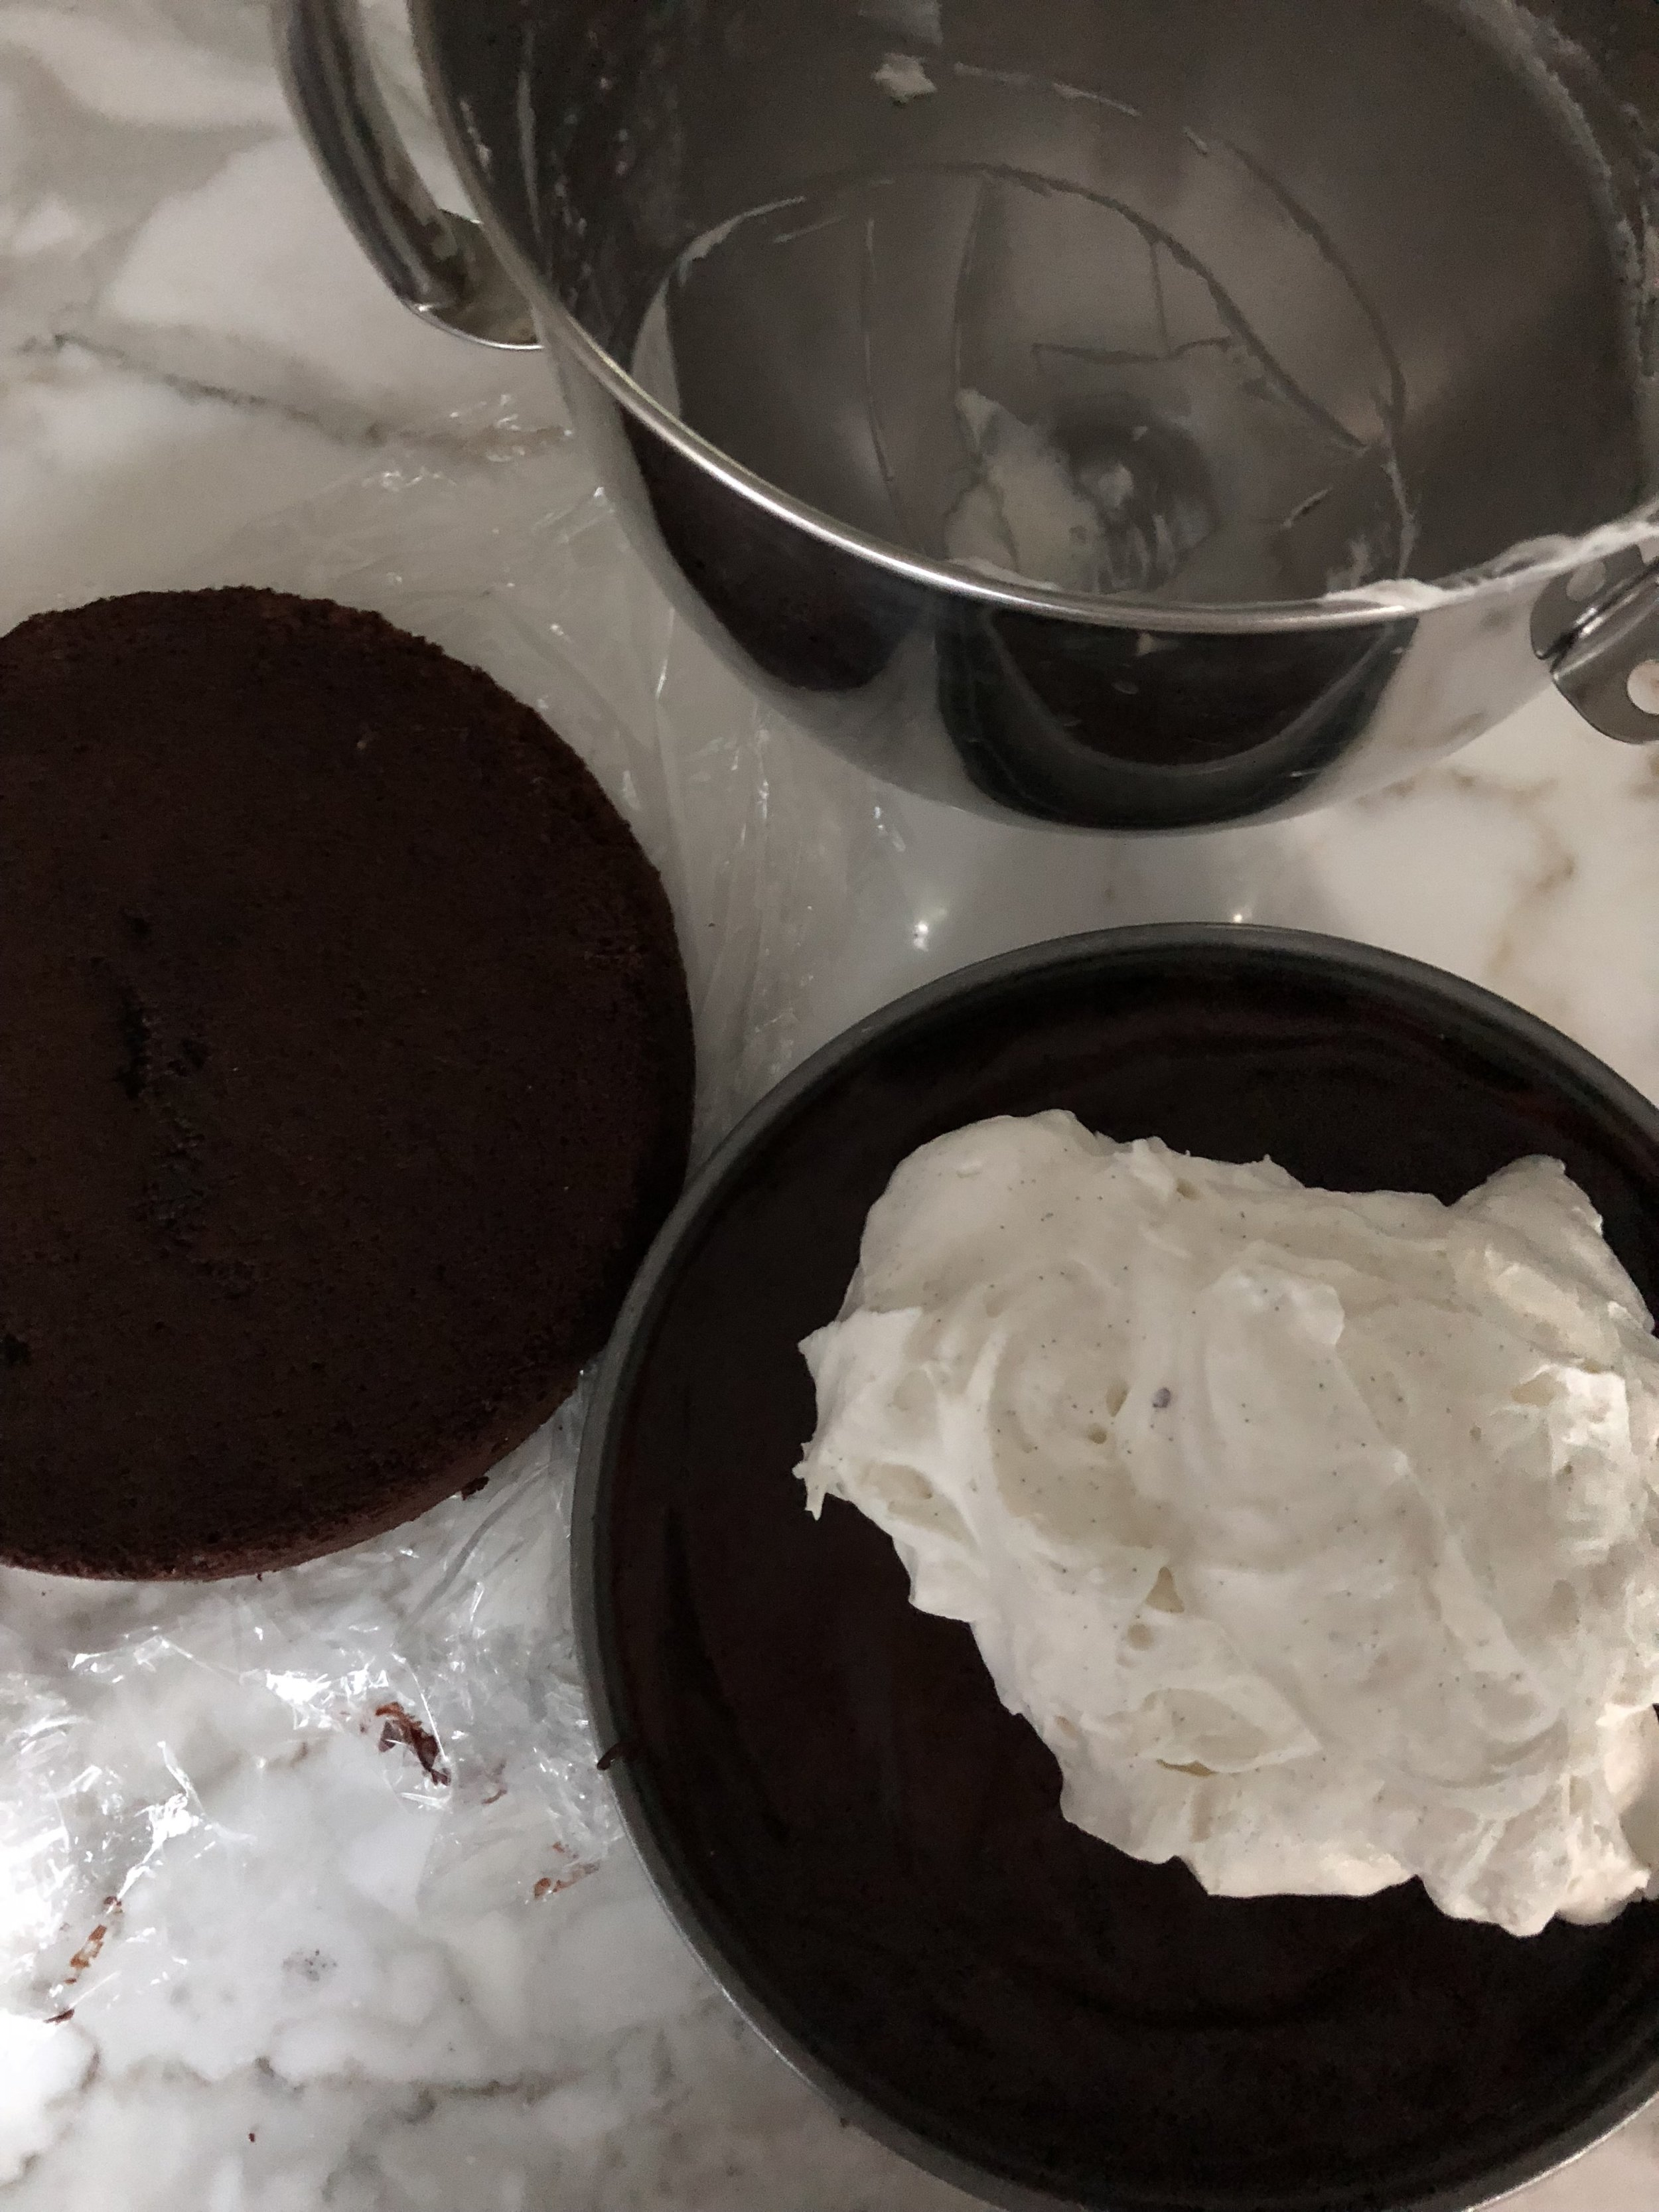 Next:  A layer of cream over the chilled ganache